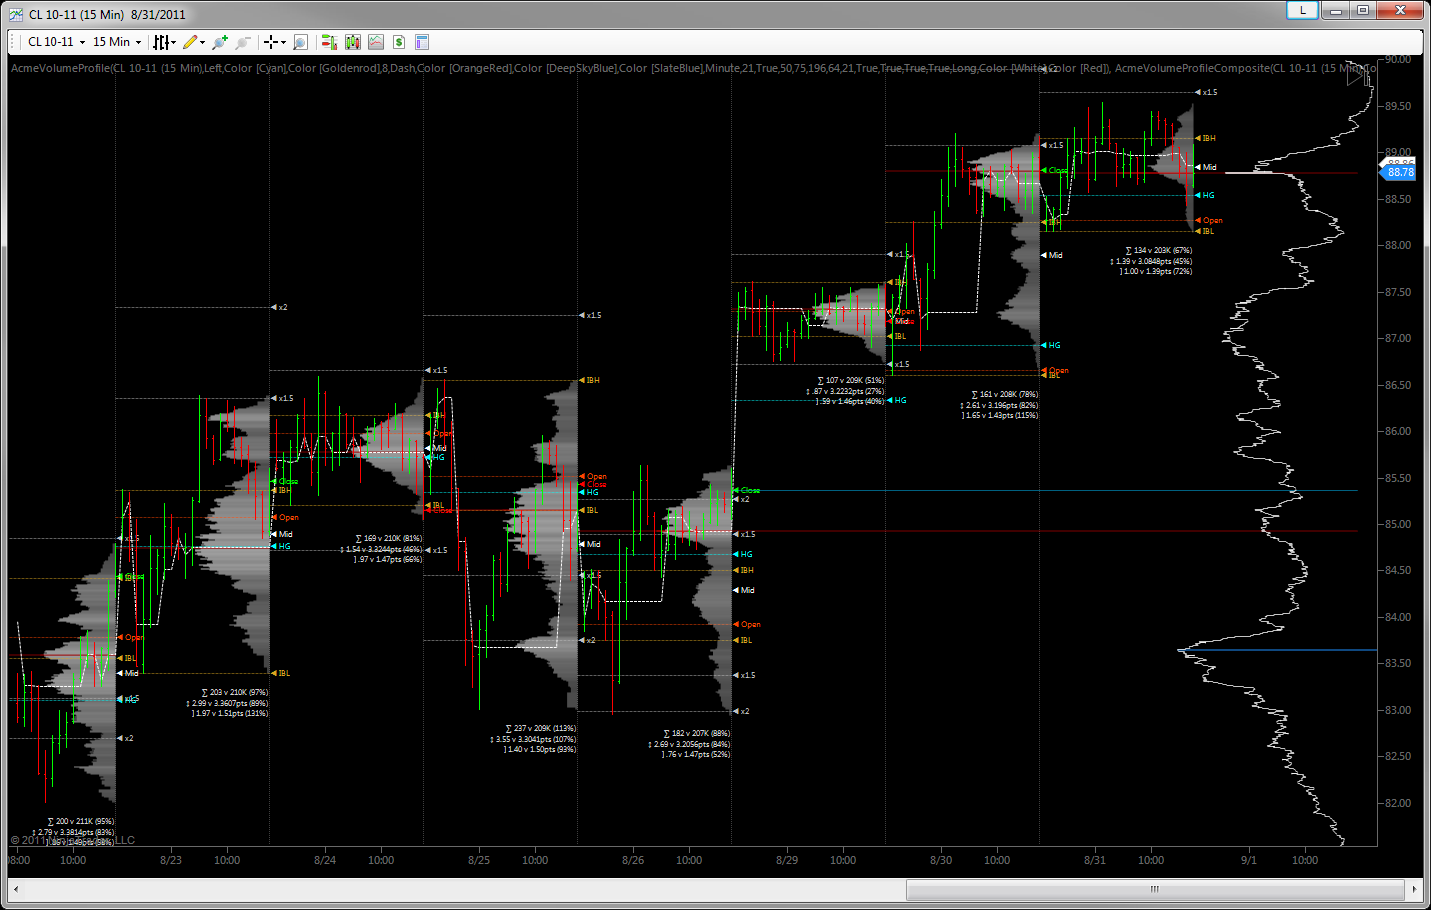 Acme Composite - Outlined